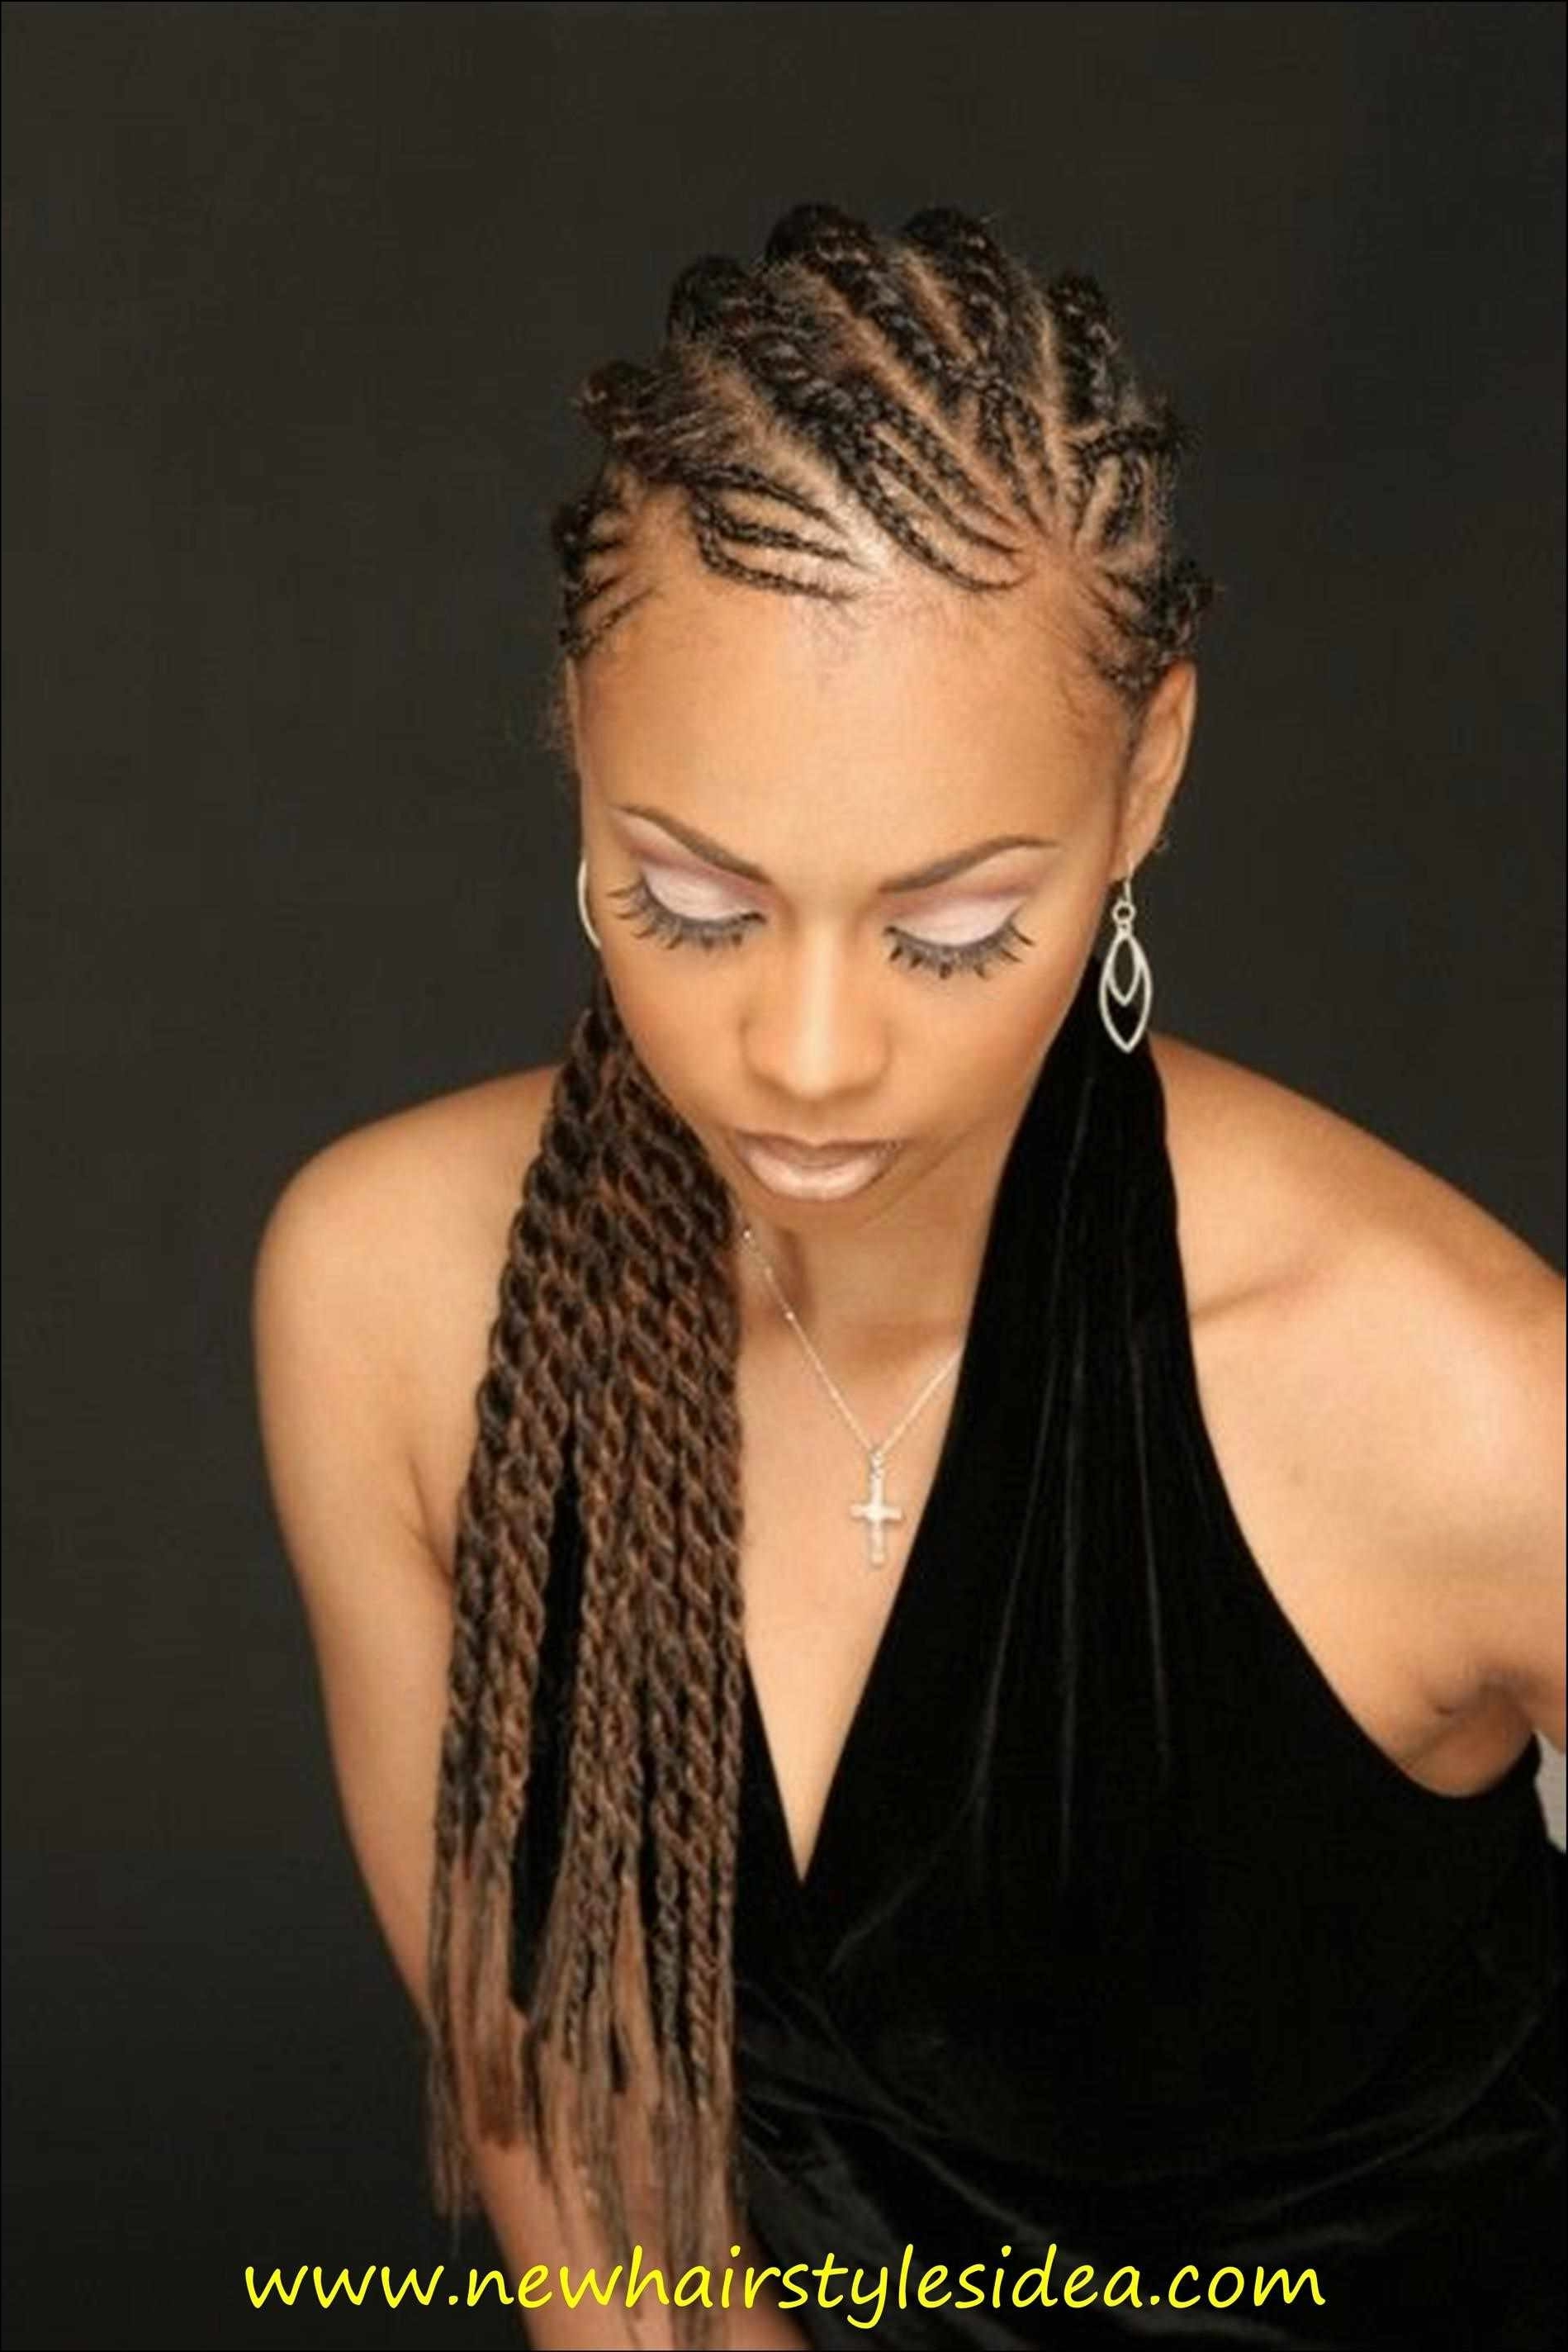 Ideas Of Pics Of Cornrow Hairstyles Unique Cornrow Hairstyles For Regarding 2018 Cornrows Hairstyles For Round Faces (Gallery 9 of 15)